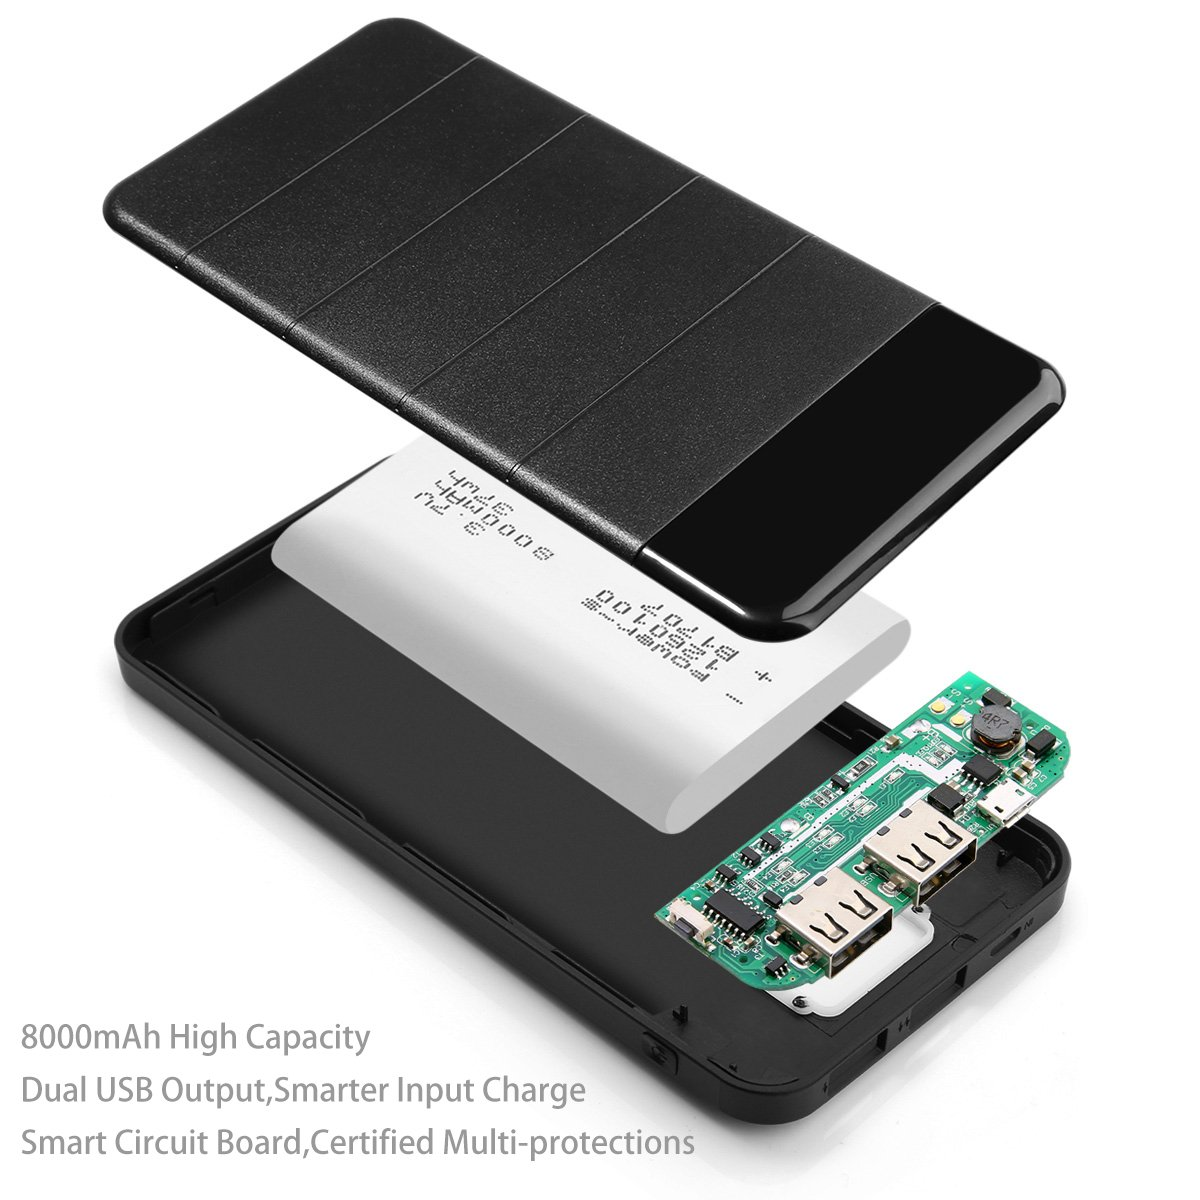 Portable Solar Charger 8000mah 4 Foldable Panels Cell Phone Circuit Boards Suppliers And Dual Usb Ports Power Bank Tablet Supply Led Flashlights Backup Bateria